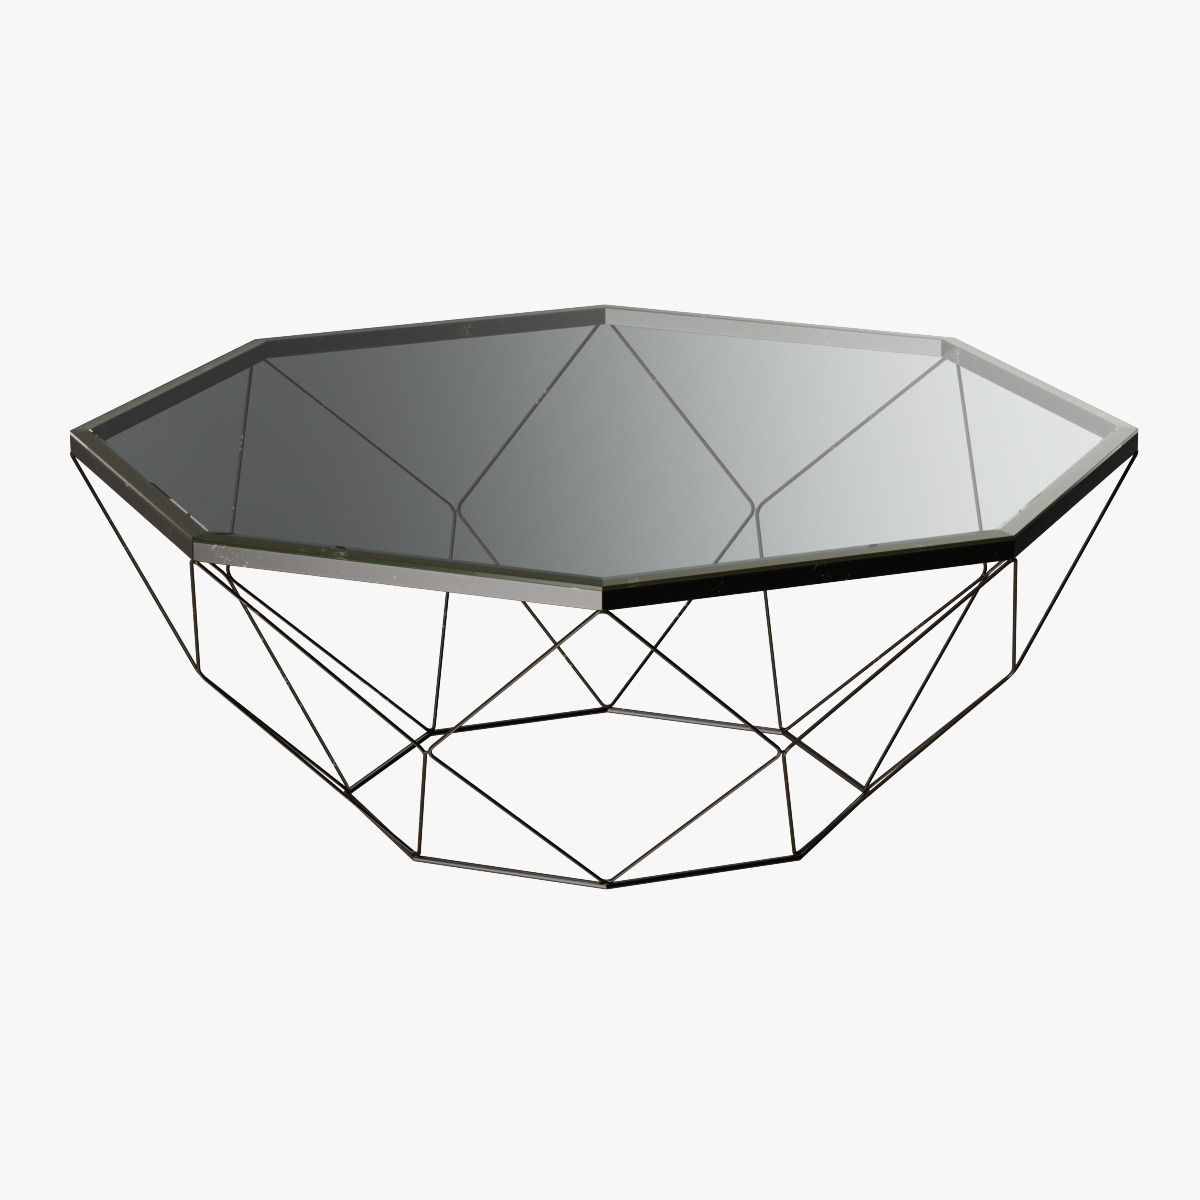 ... Geometric Antique Brass Coffee Table With Glass Top 3d Model Max Obj  3ds Fbx Mtl 2 ...